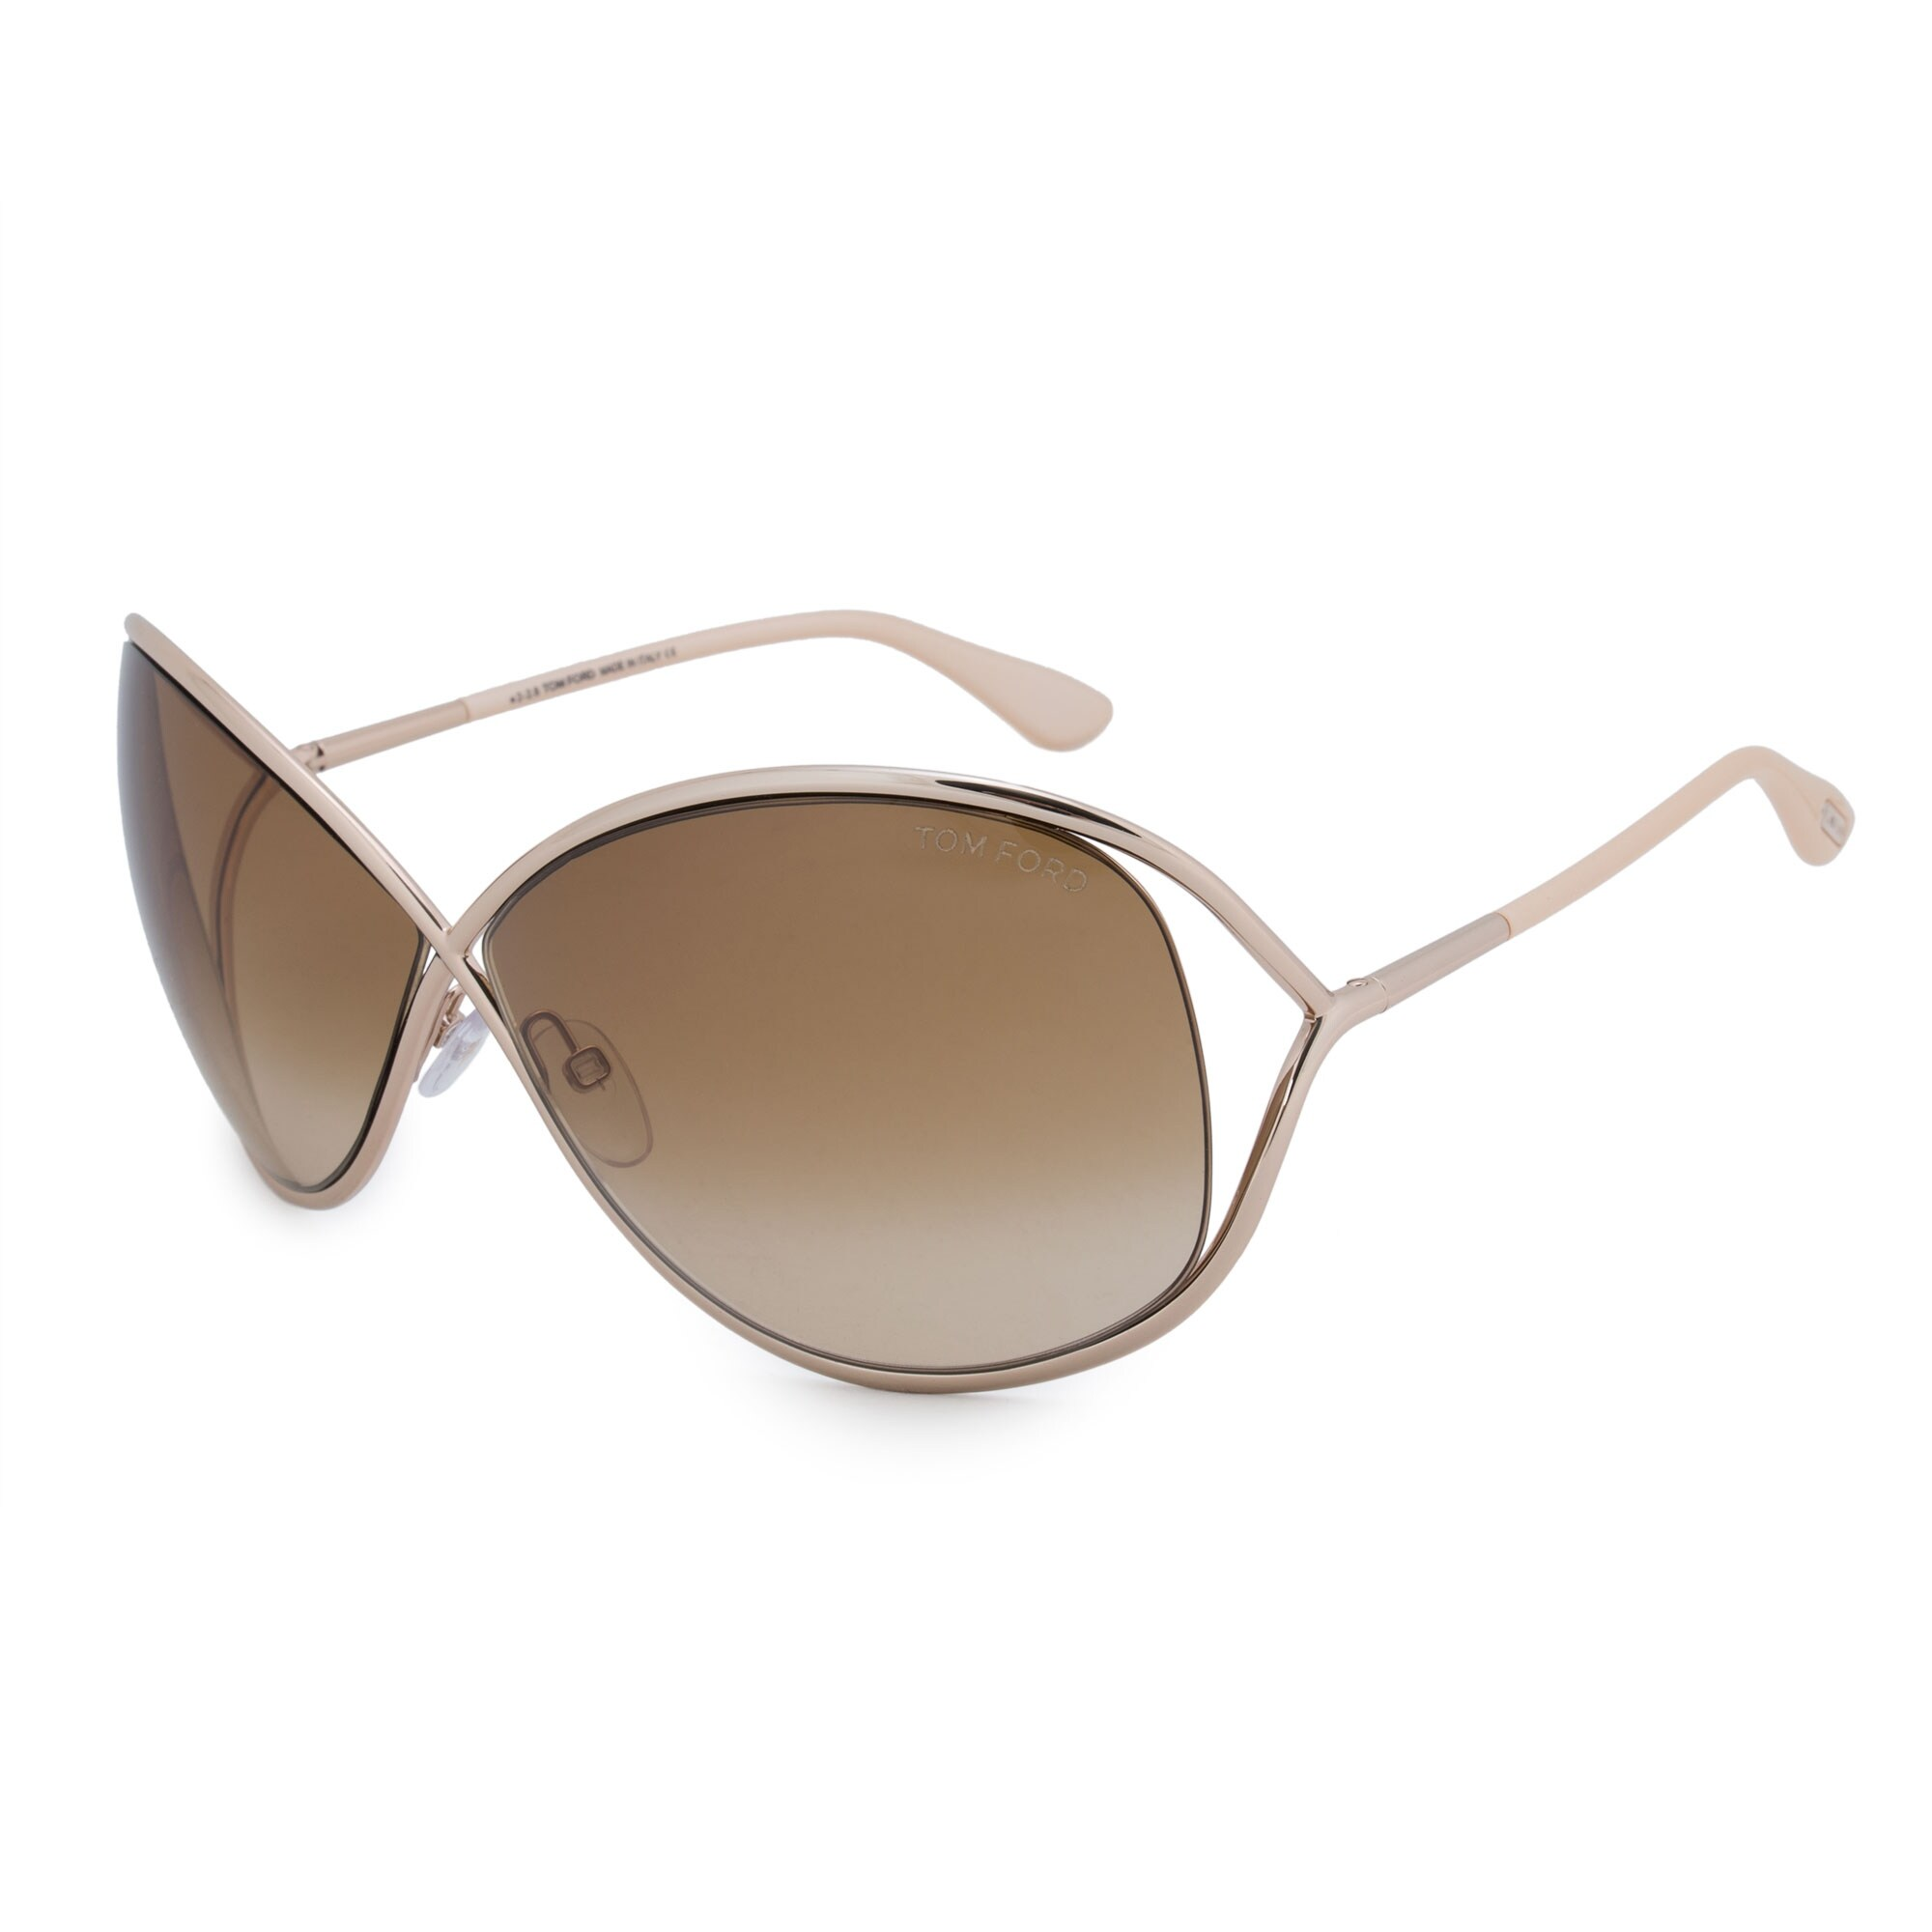 4d0d9e73cf Shop Tom Ford Miranda Butterfly Sunglasses FT0130 28F 68 - On Sale - Free  Shipping Today - Overstock - 23138745